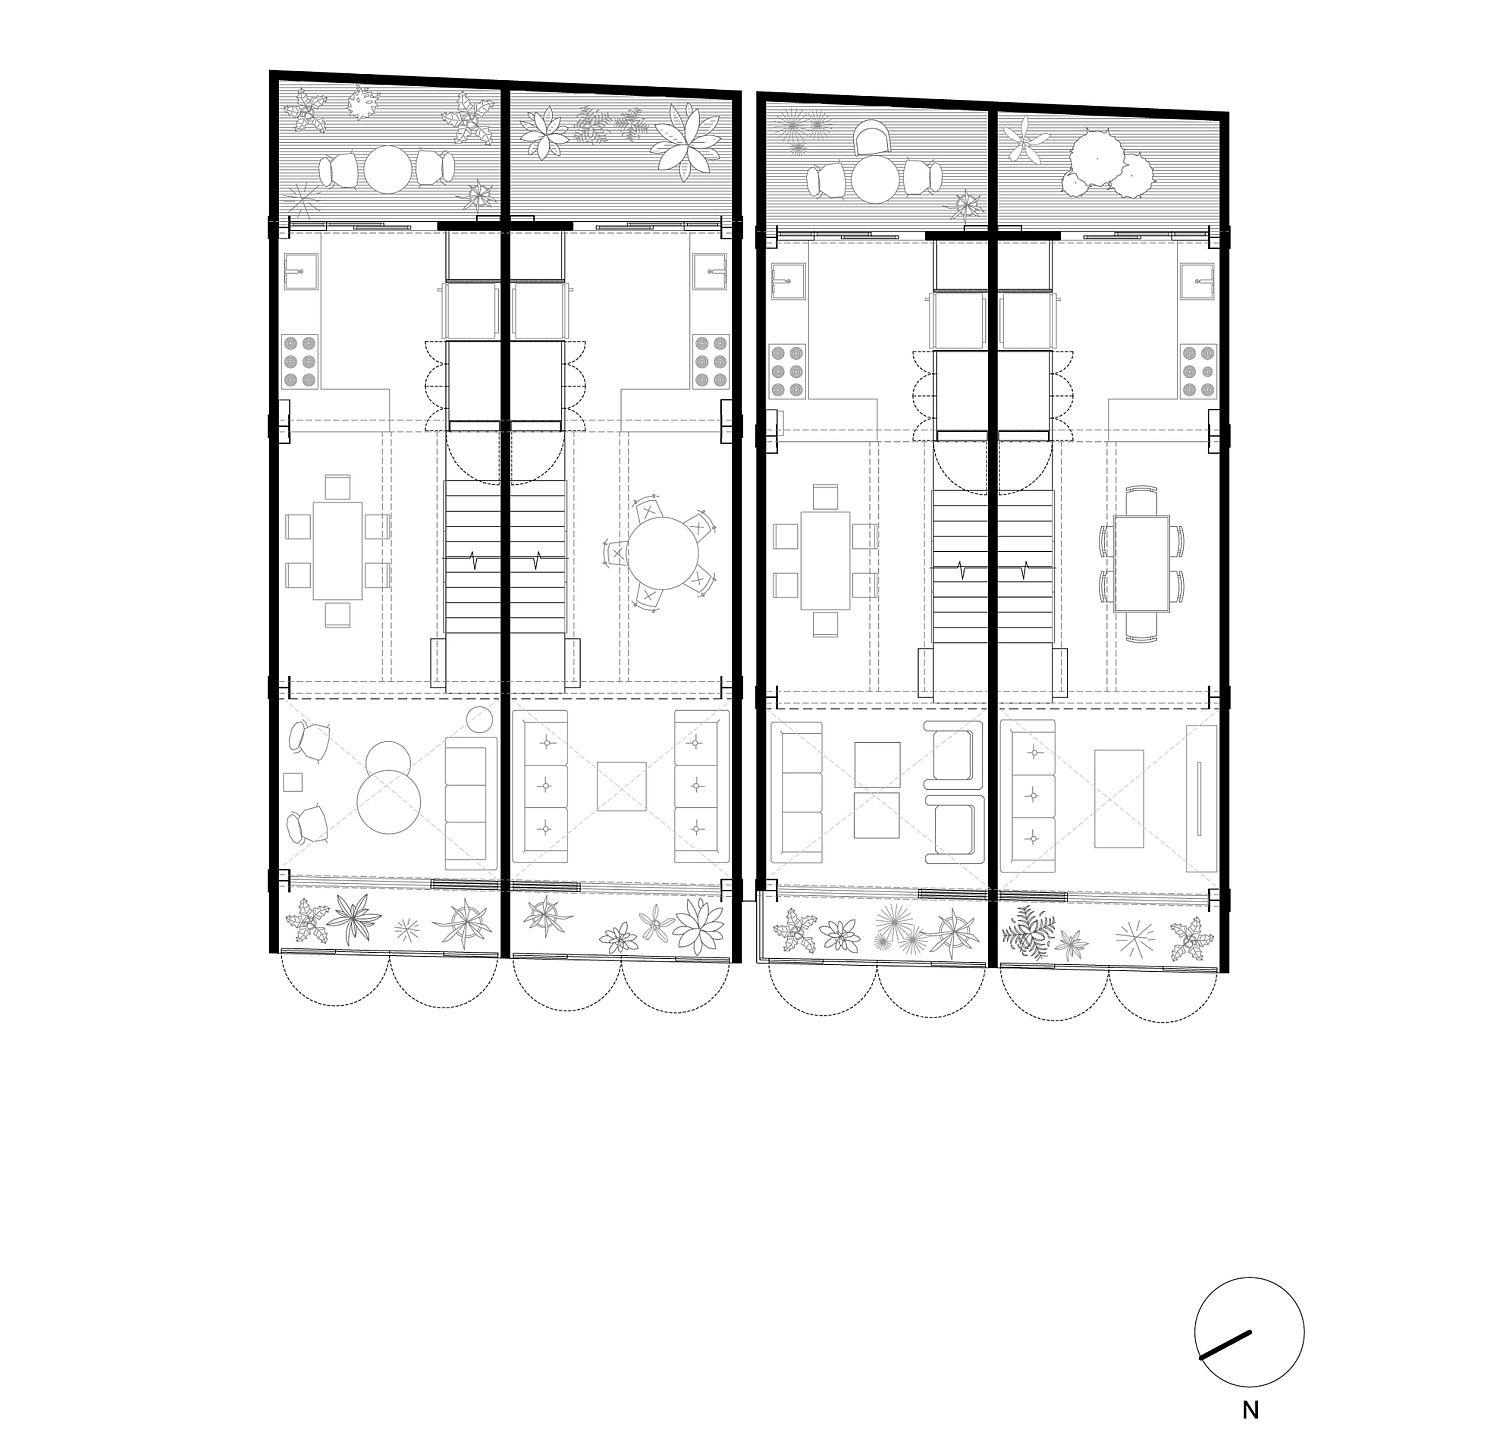 Floor plan of first level of Townhouses Hipódromo